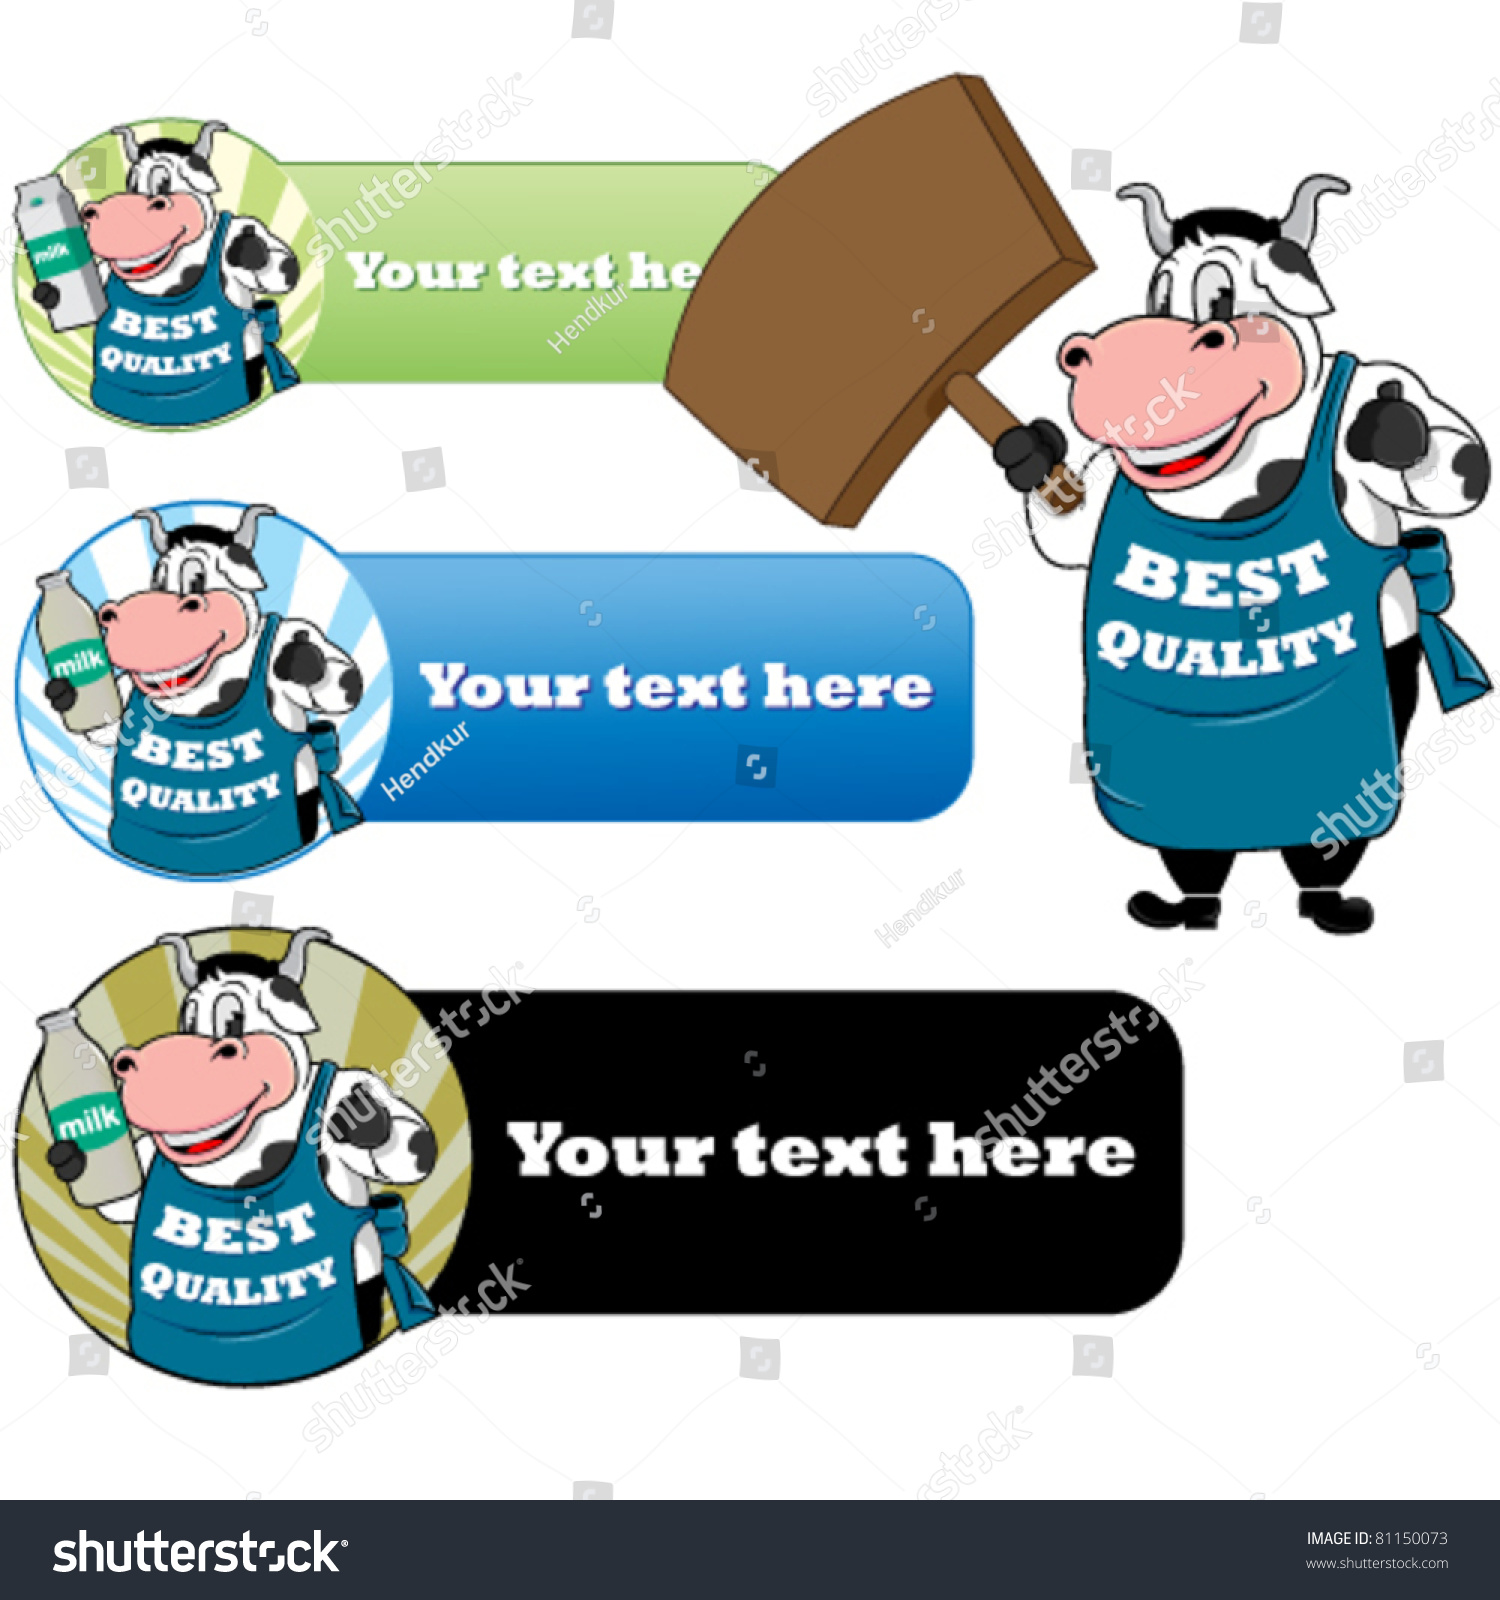 Funny cow character wearing apron stock vector 81150073 shutterstock funny cow character wearing apron buycottarizona